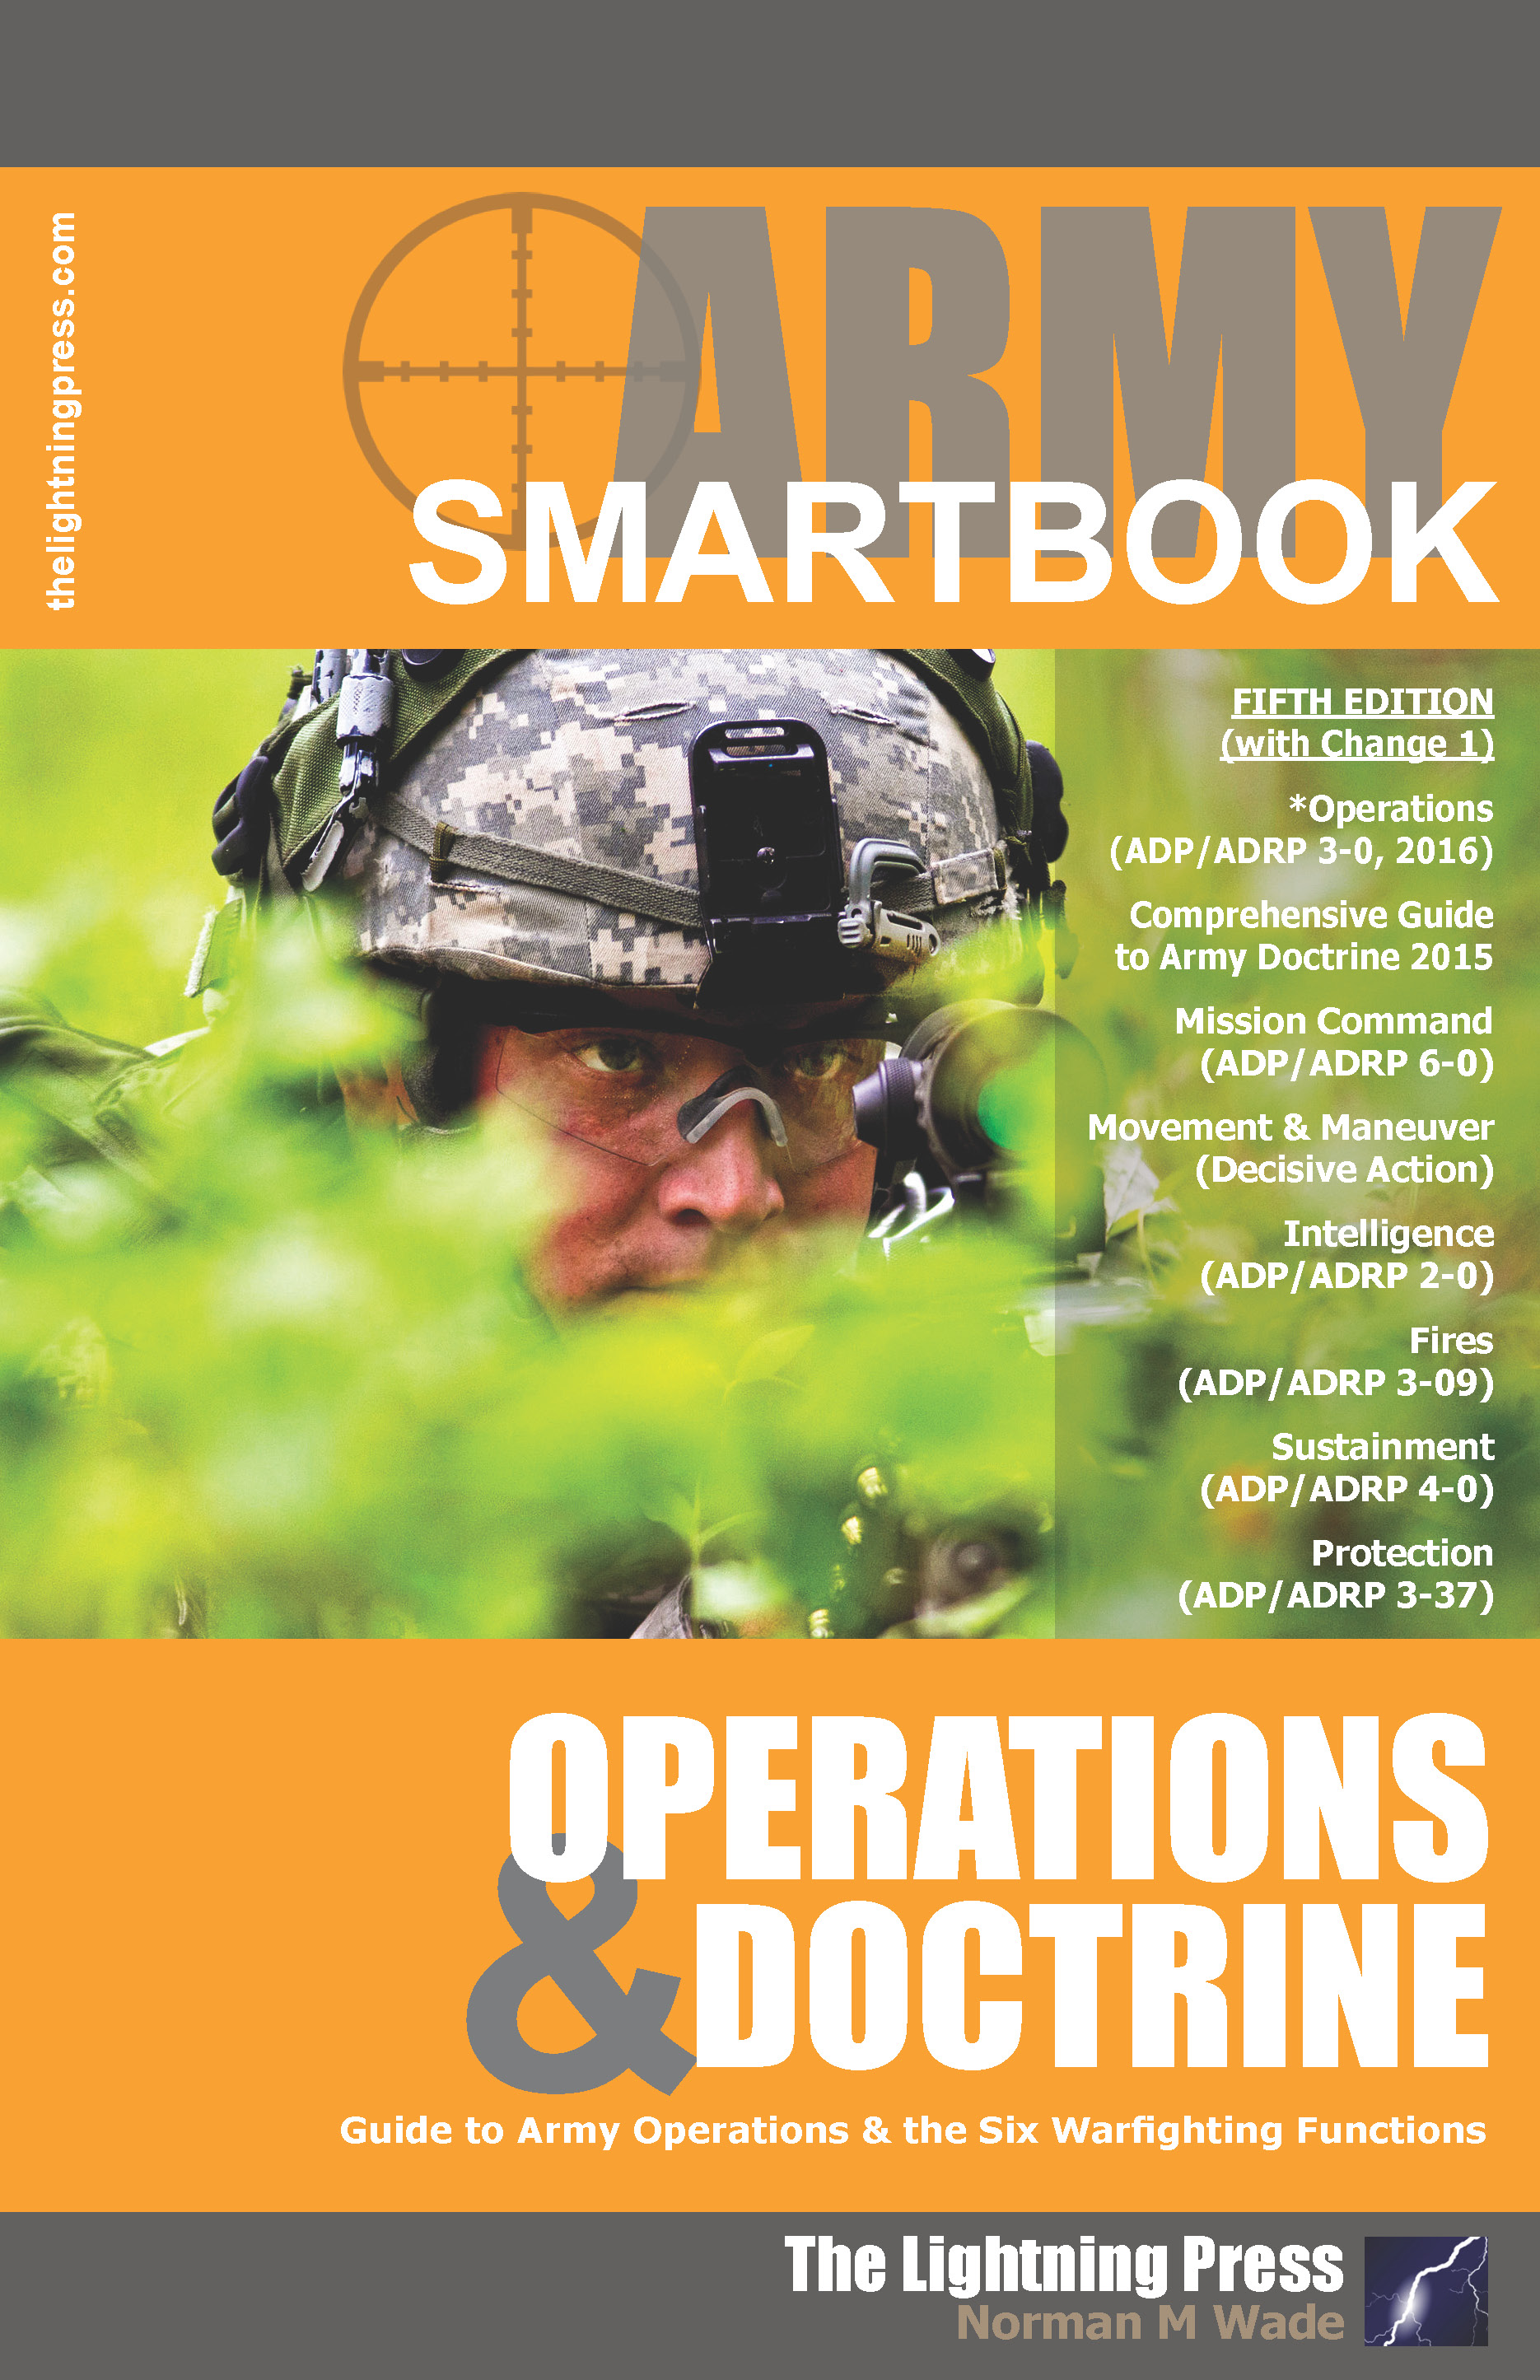 AODS5: The Army Operations & Doctrine SMARTbook, 5th Ed. w/Change 1 (PREVIOUS EDITION)